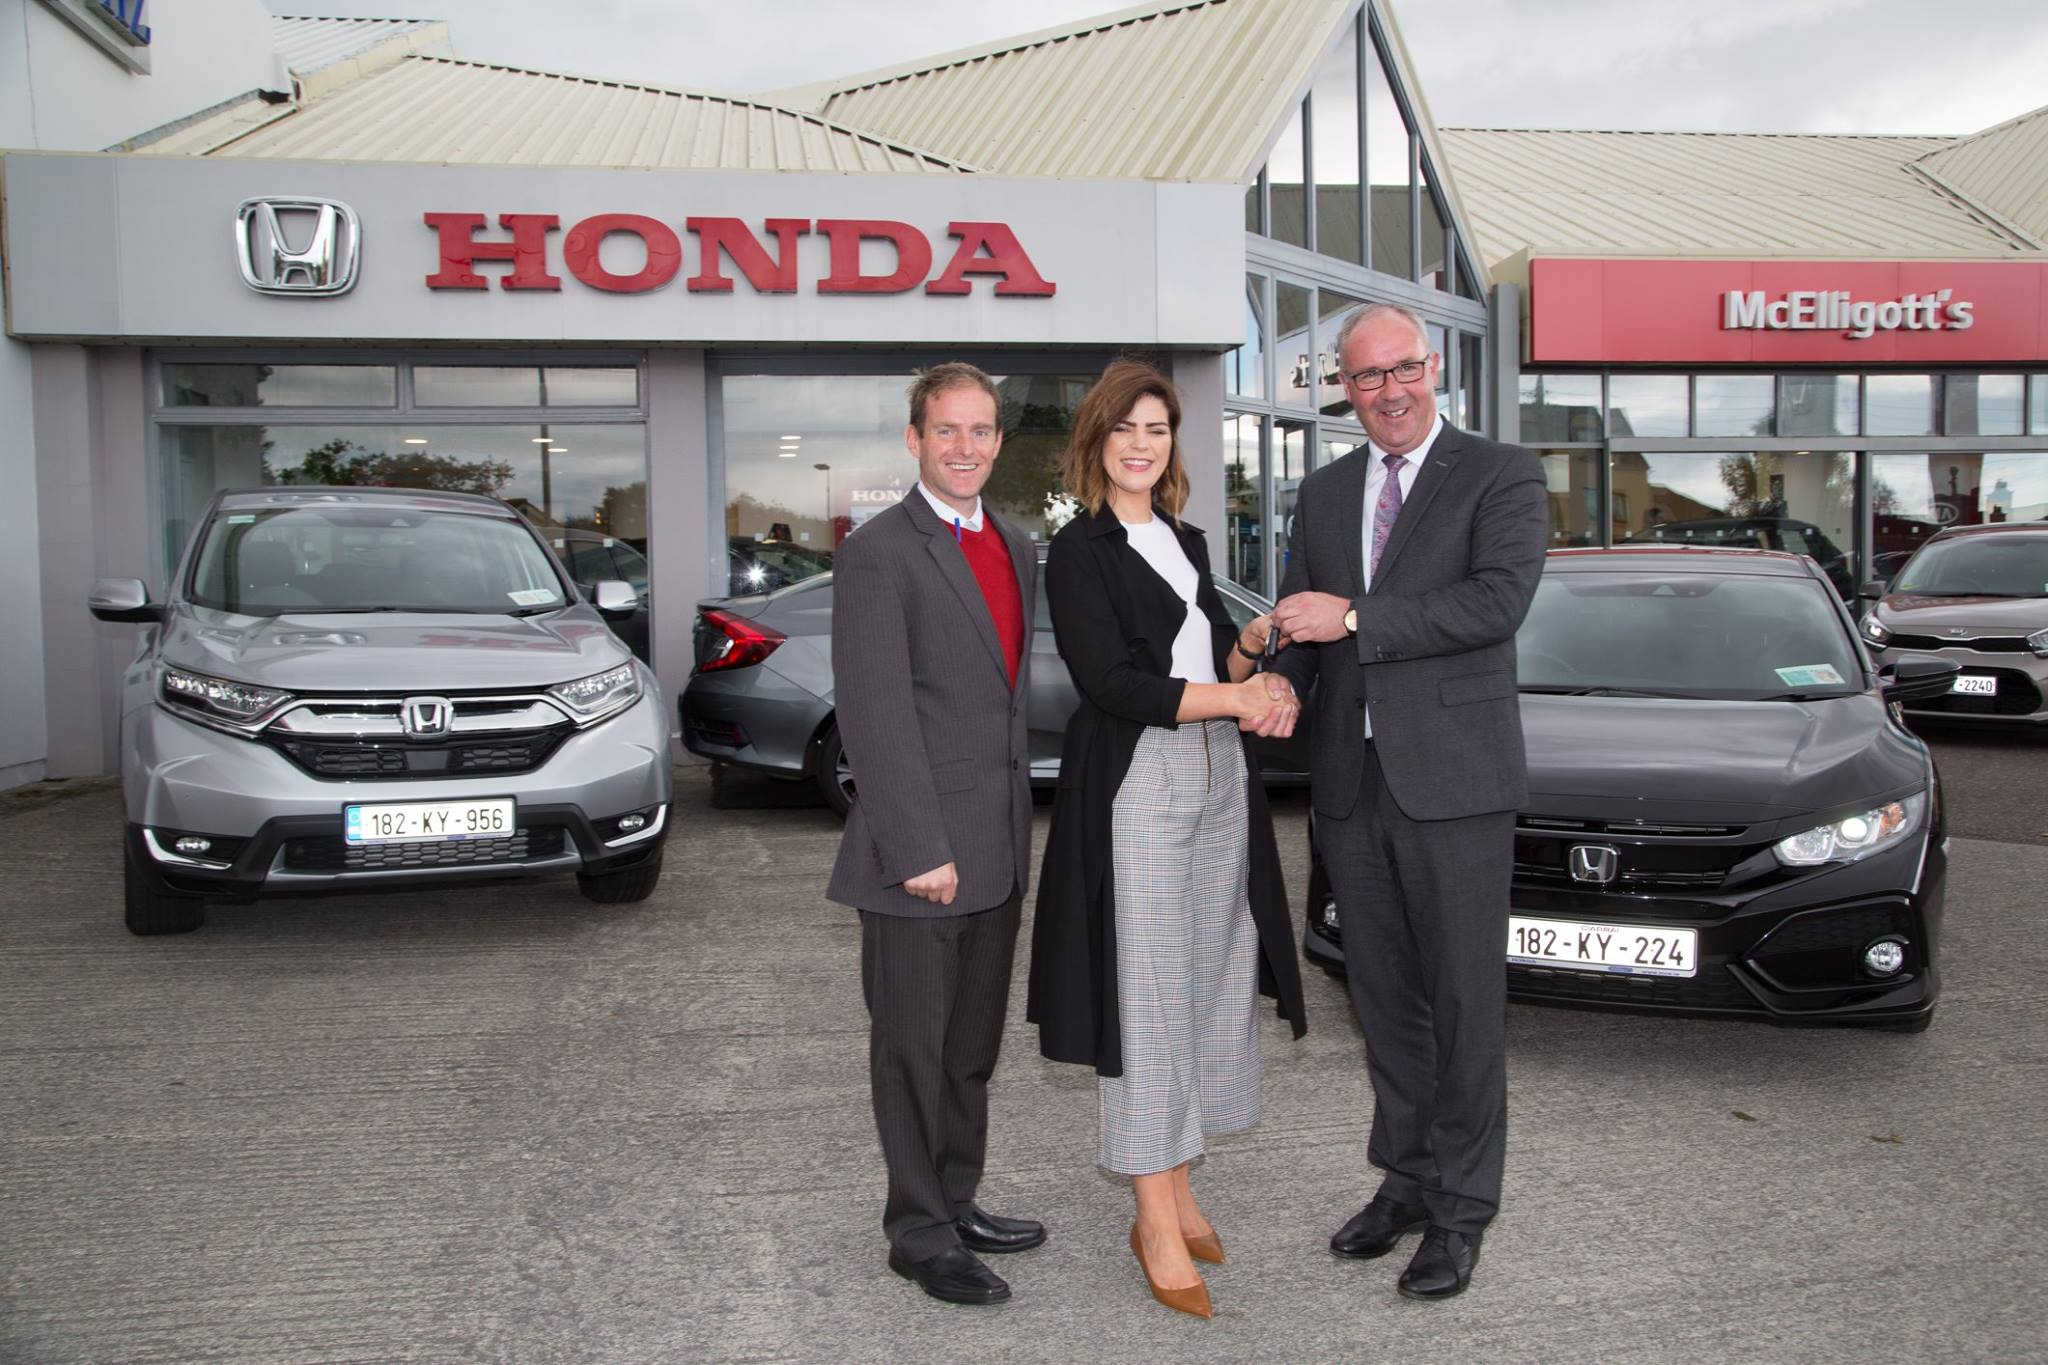 Siobhan Coakley with Martin Mullane and Donal Lynch picking up her Civic